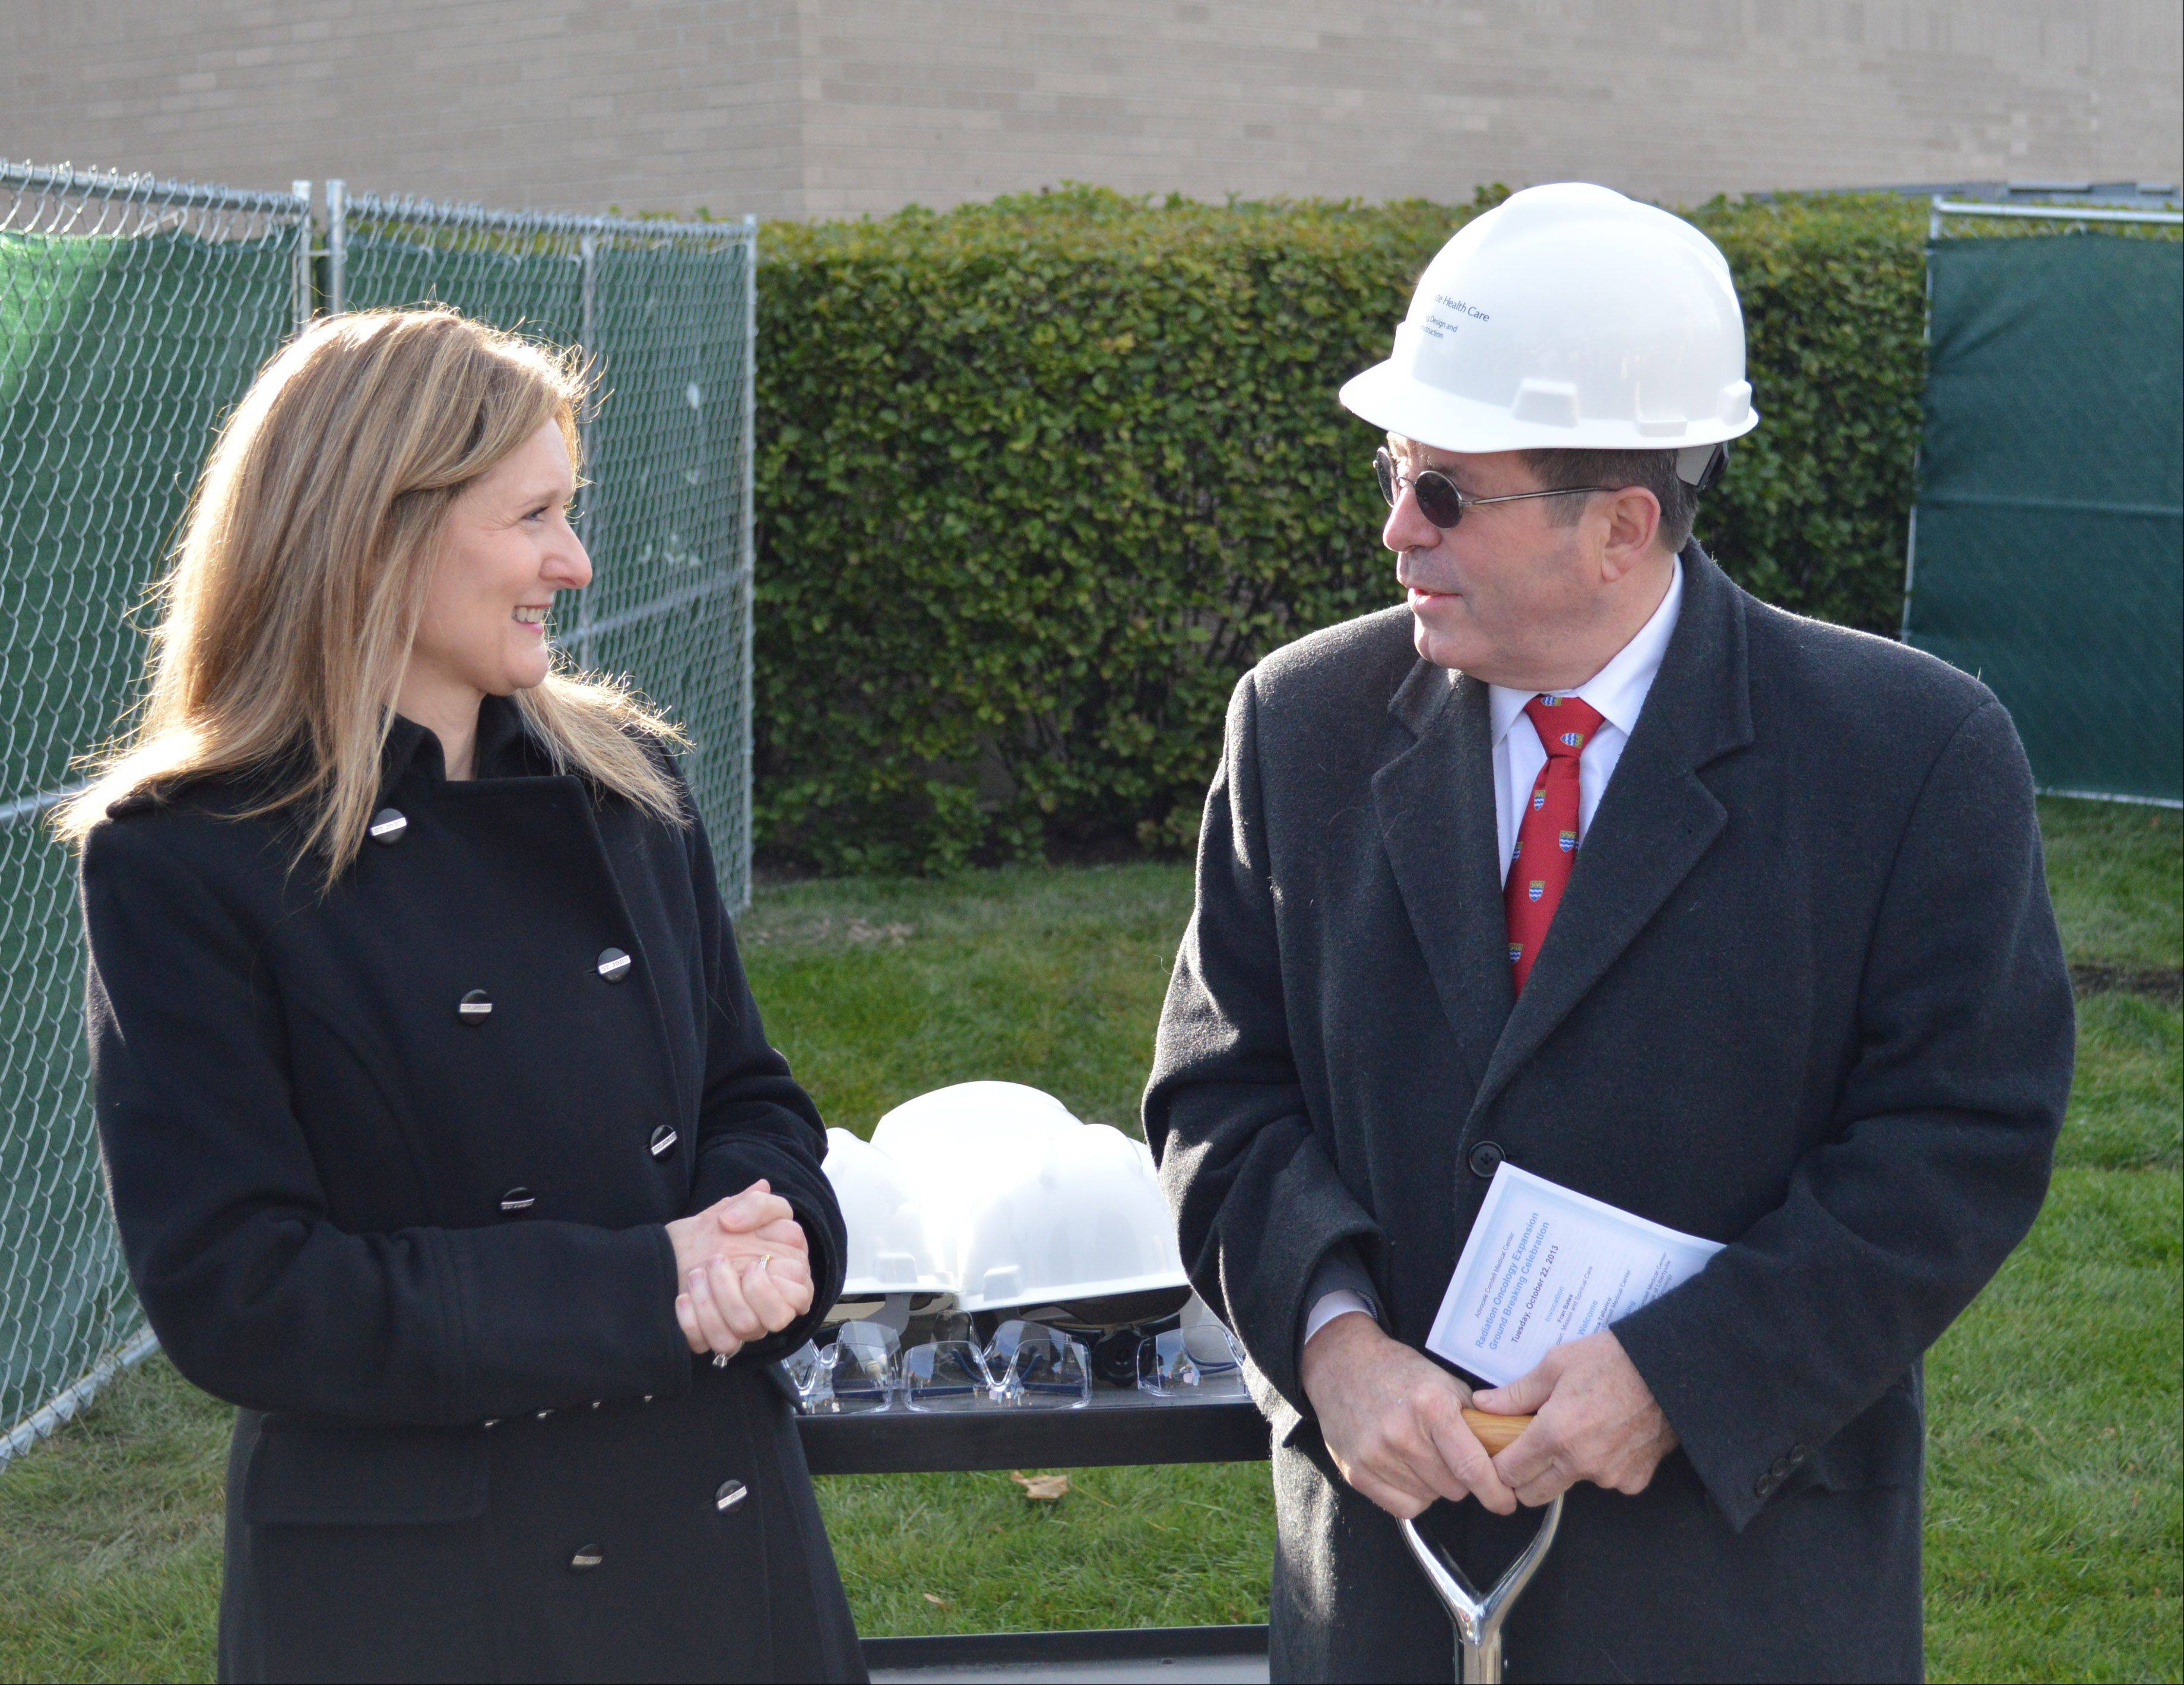 Officials break ground at Advocate Condell Medical Center in Libertyville for its Radiation Oncology and Cancer Survivorship Resource Center. Advocate Condell Medical Center President Dominica Tallarico, left, speaks with Libertyville Mayor Terry Weppler at the event.